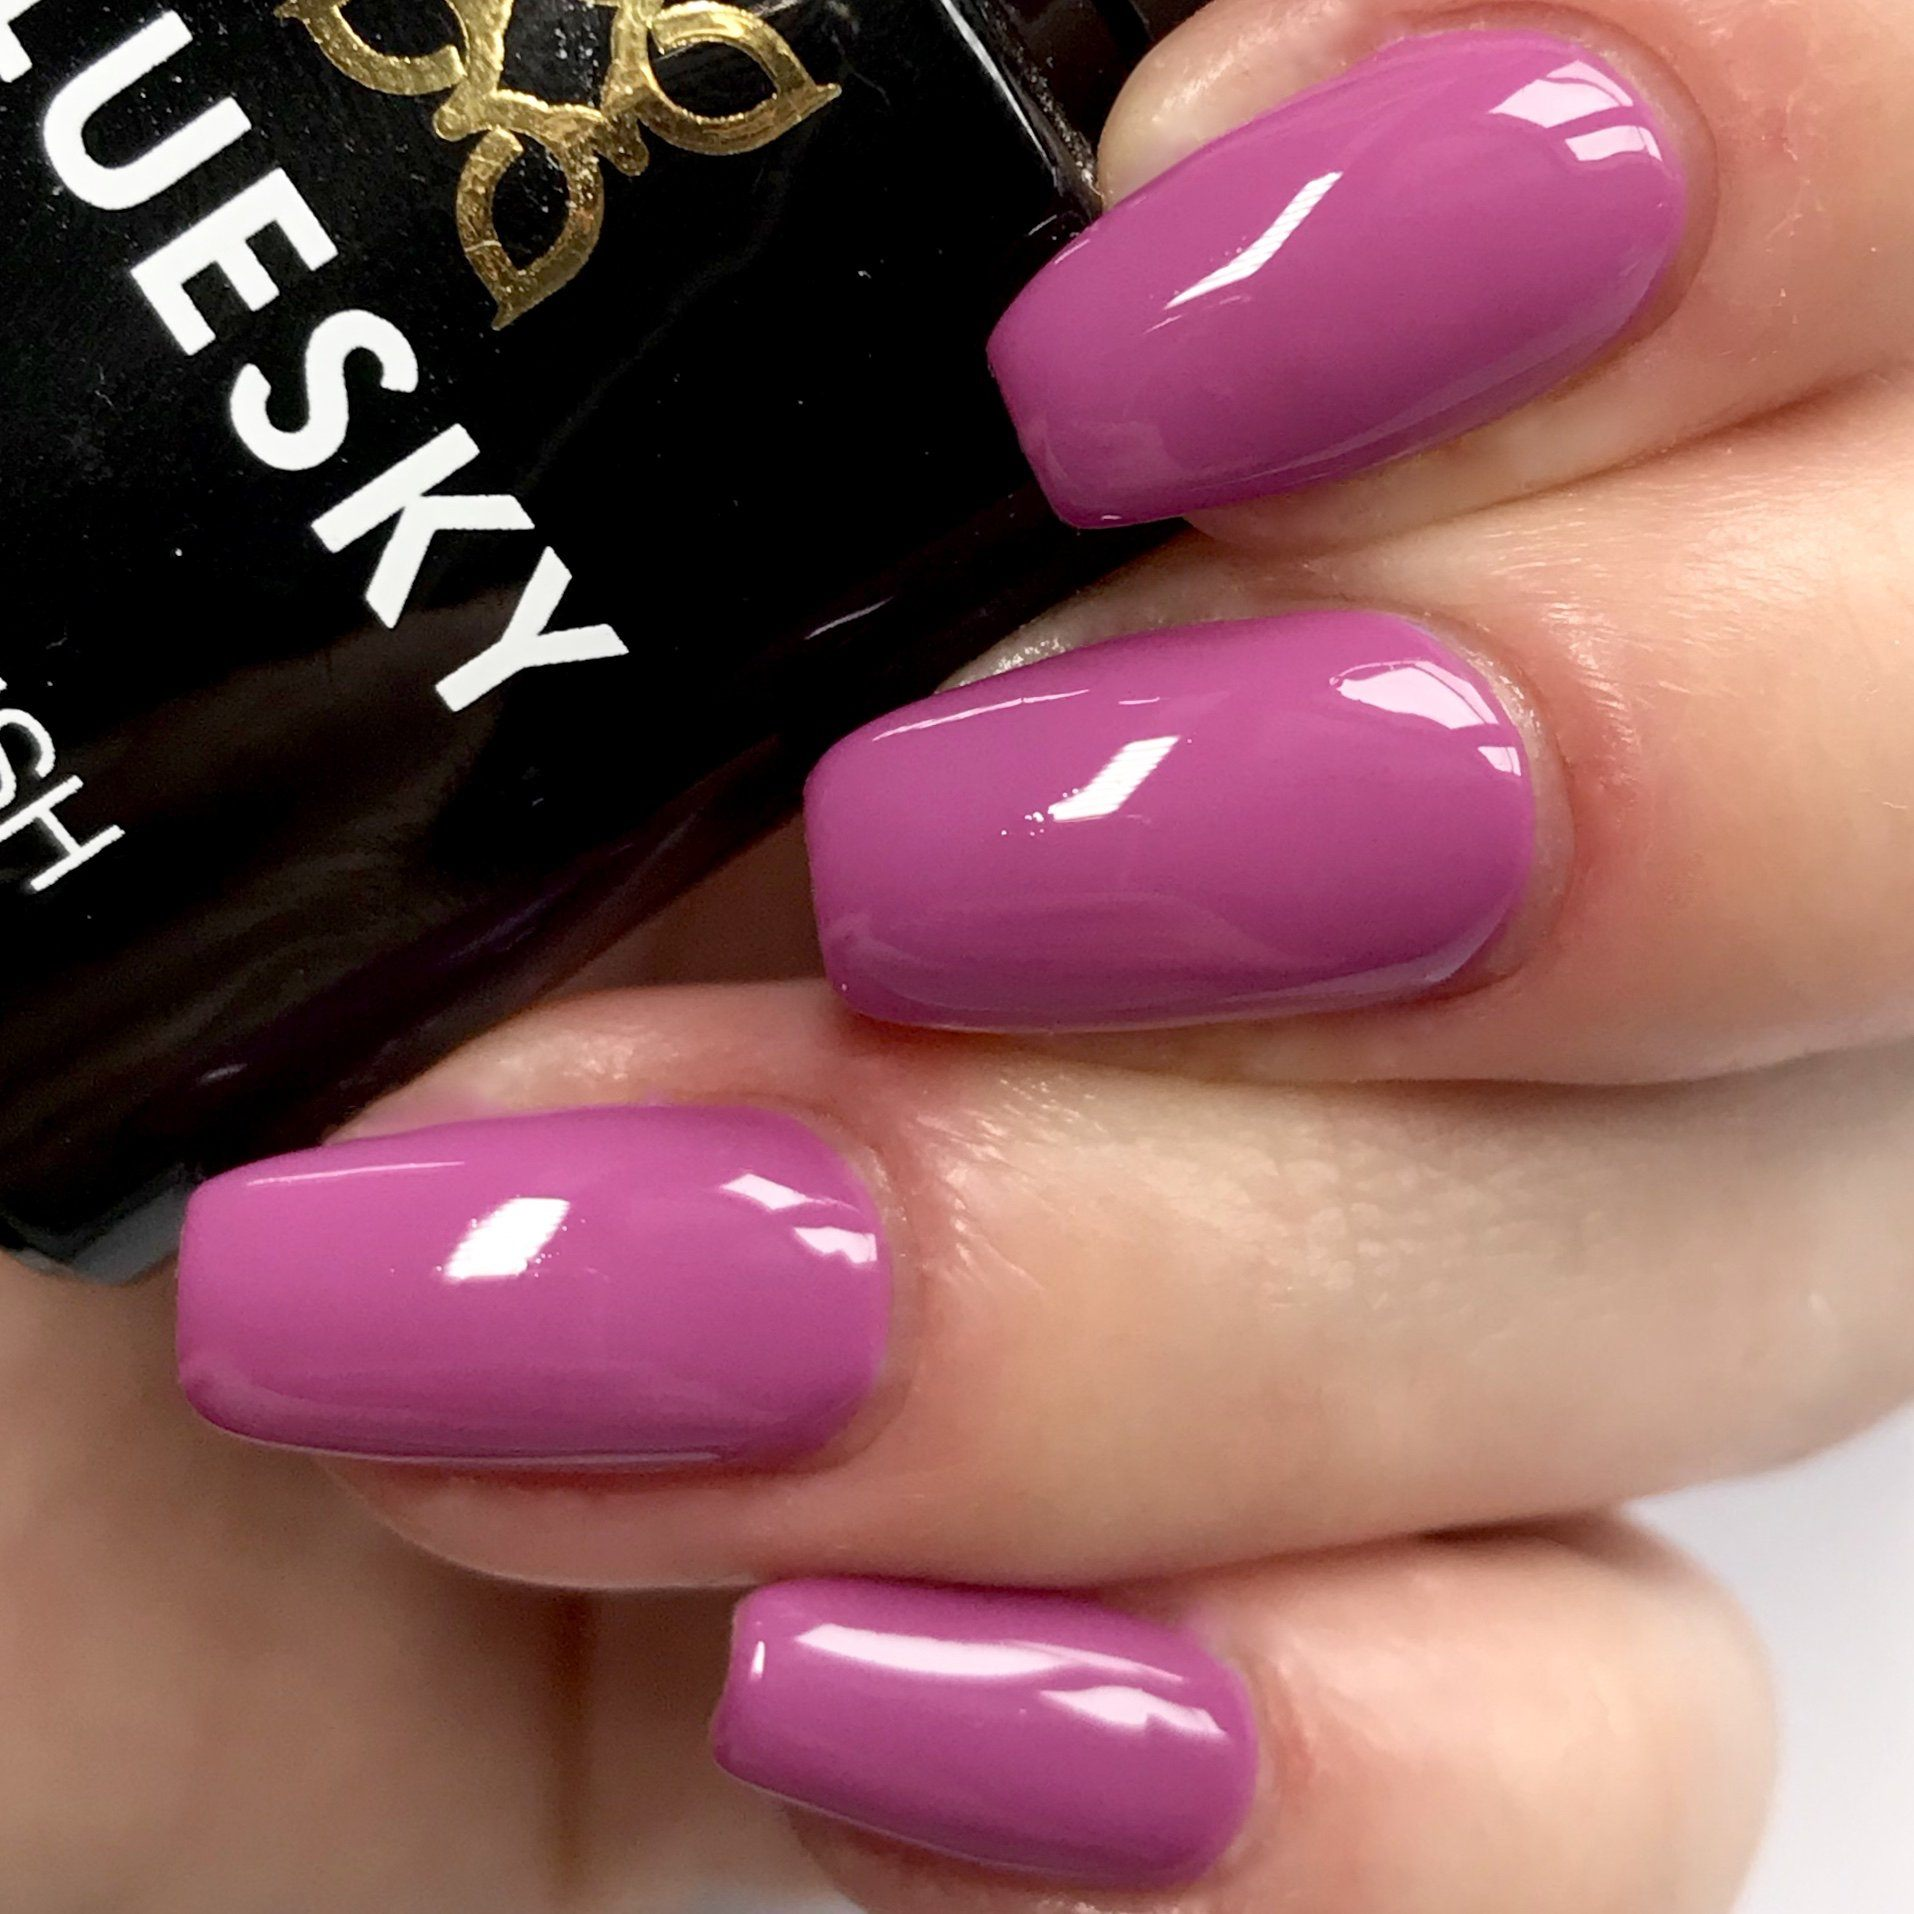 Bluesky A 109 PURPLE PINK UV/LED Soak Off Gel Nail Polish 10ml Free Postage - Bluesky Nail Gel Polish